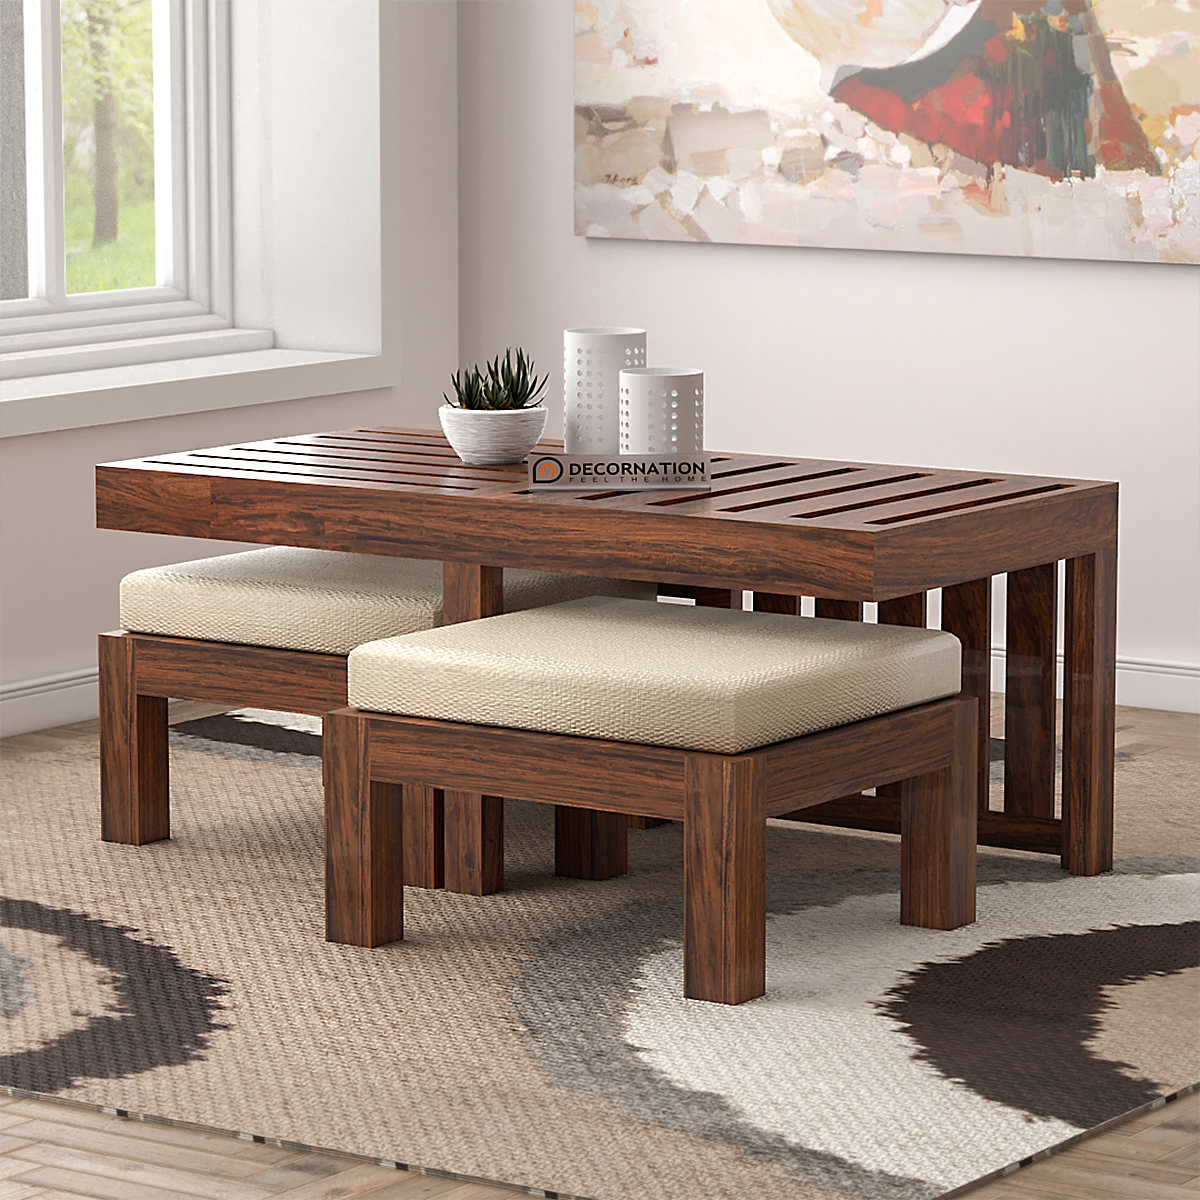 Myron Solid Wooden Coffee Table 2 Stools Natural Finish Decornation